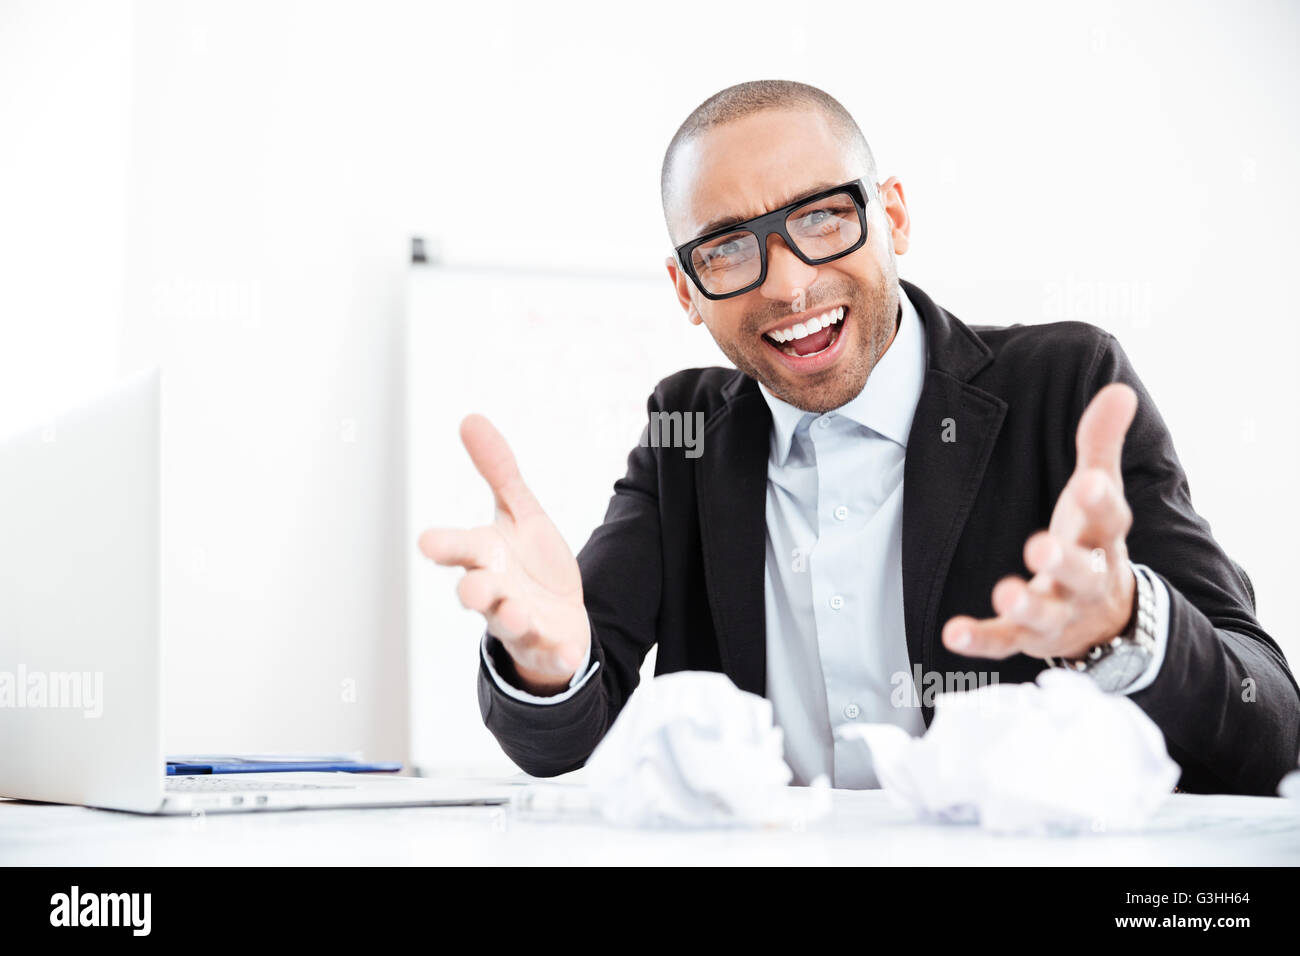 Angry nervous businessman working at office desk overloaded with paperwork and shouting at camera - Stock Image